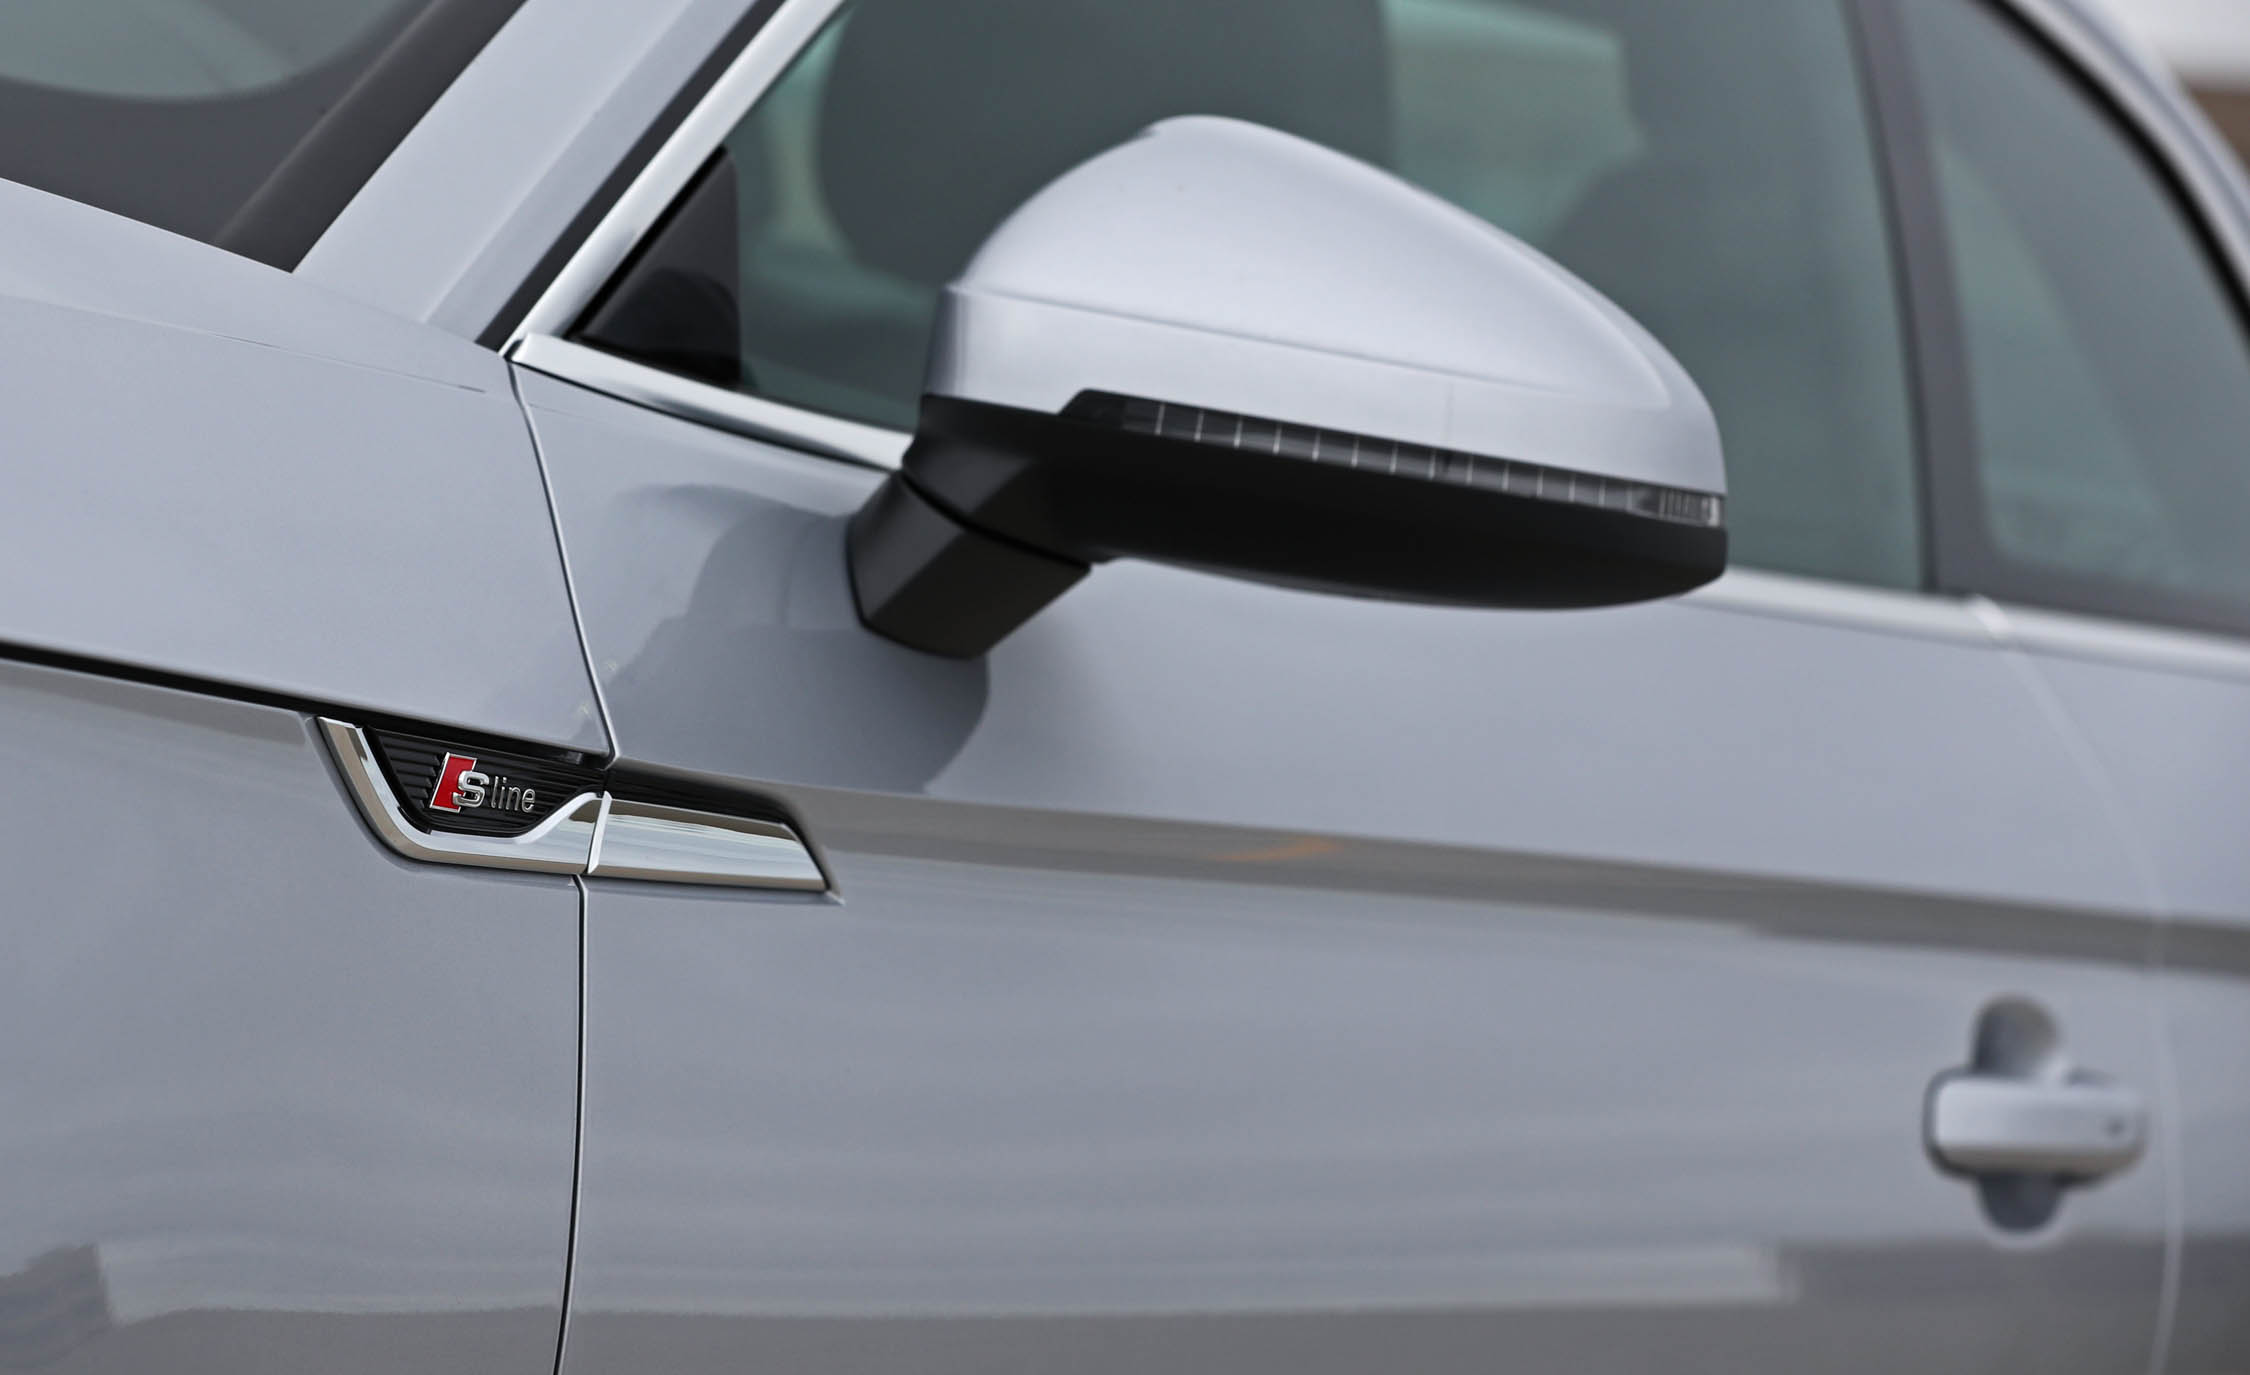 2018 Audi A5 Coupe Exterior View Side Mirror (Photo 12 of 50)